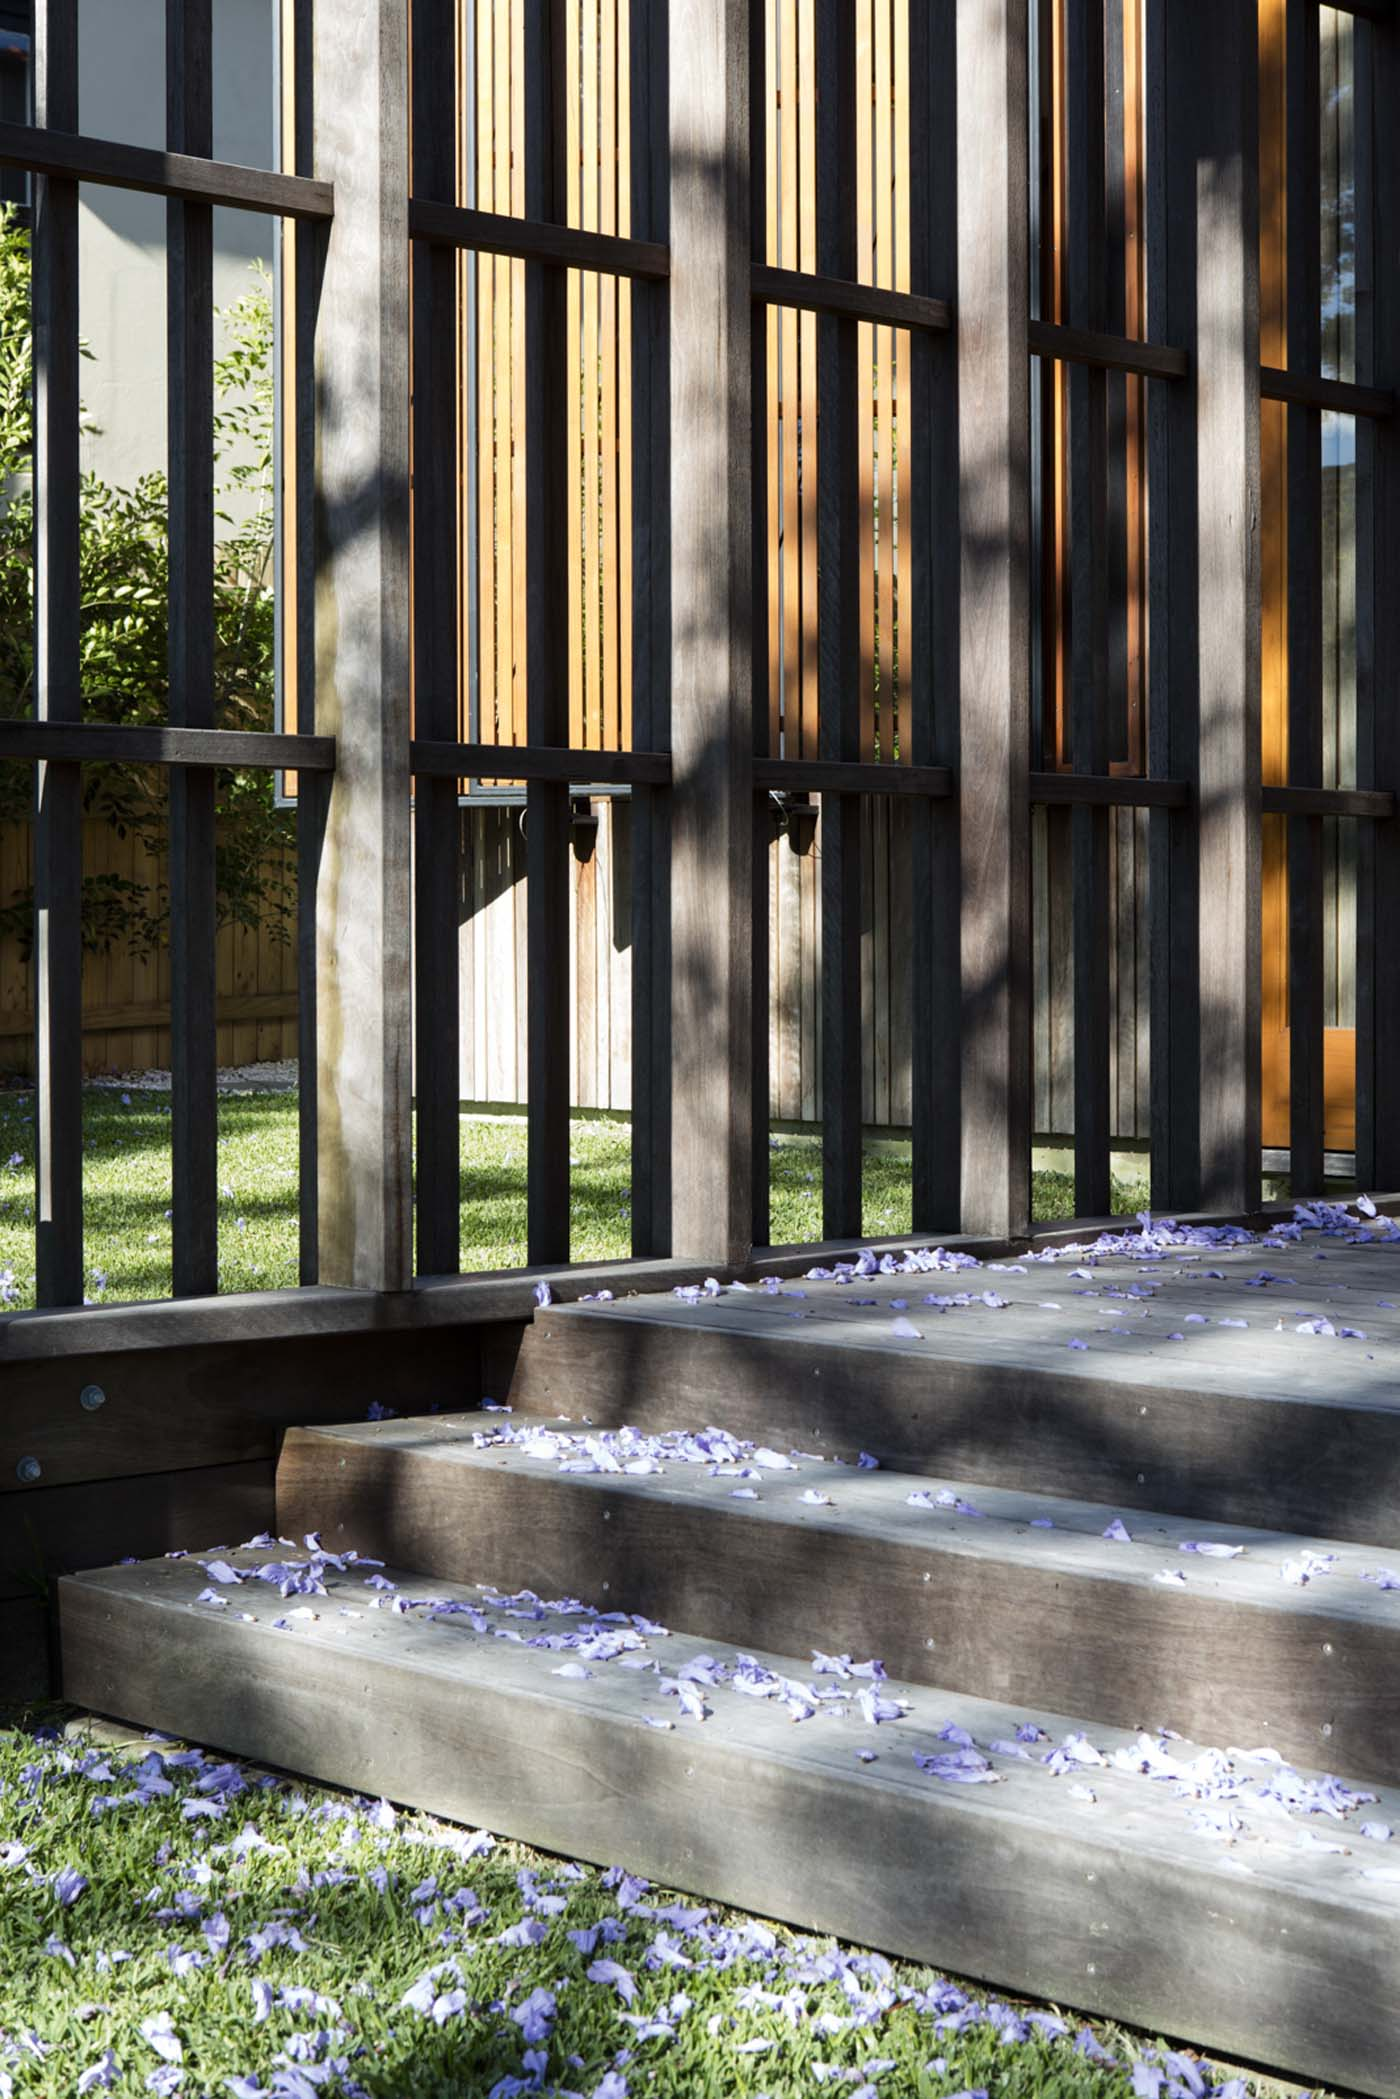 Sung Dobson house by Sam Crawford Architects, Sydney. Steps from the deck to the garden.